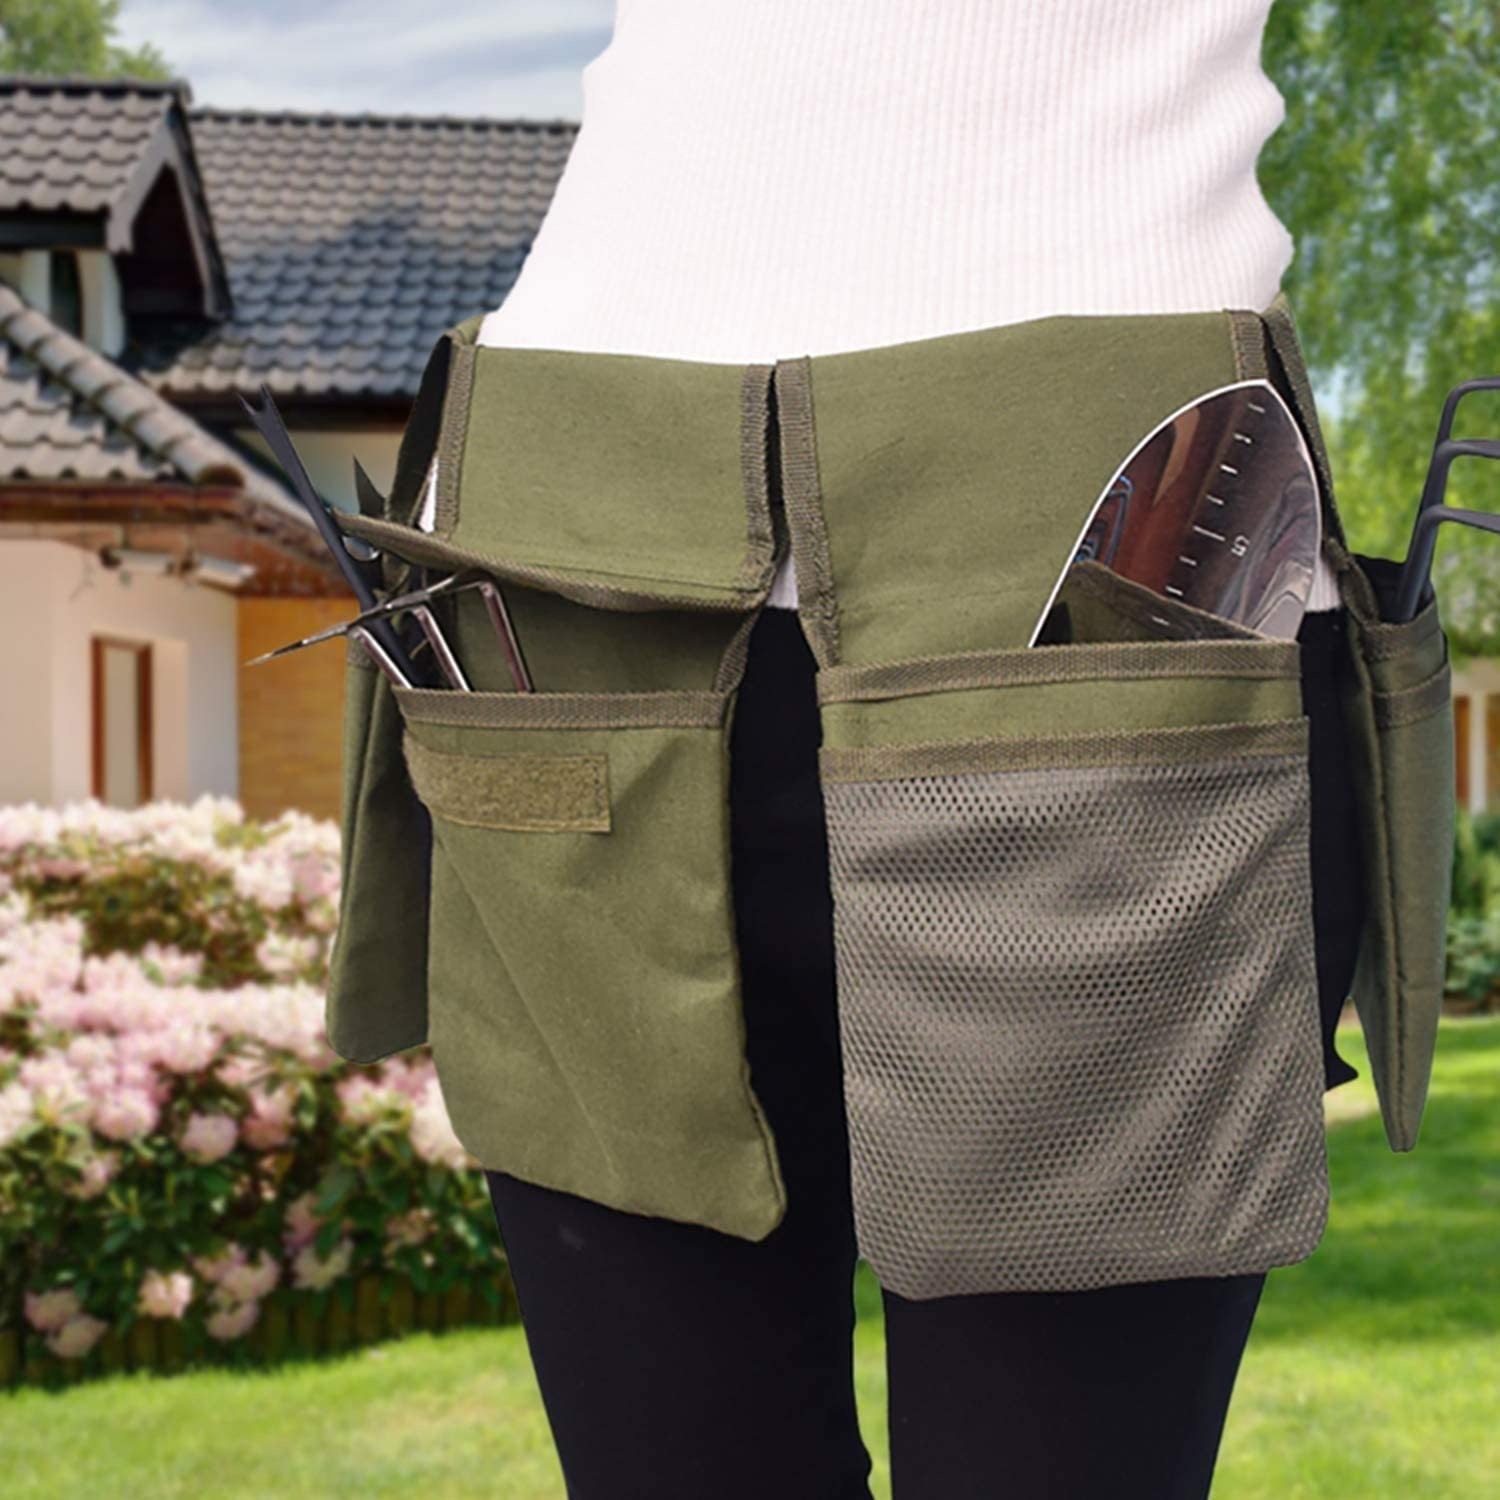 Gardening Tool Belt Bag - Canvas Waist Tool Apron Organizer Hanging Pouch with 4 Pockets, Waterproof